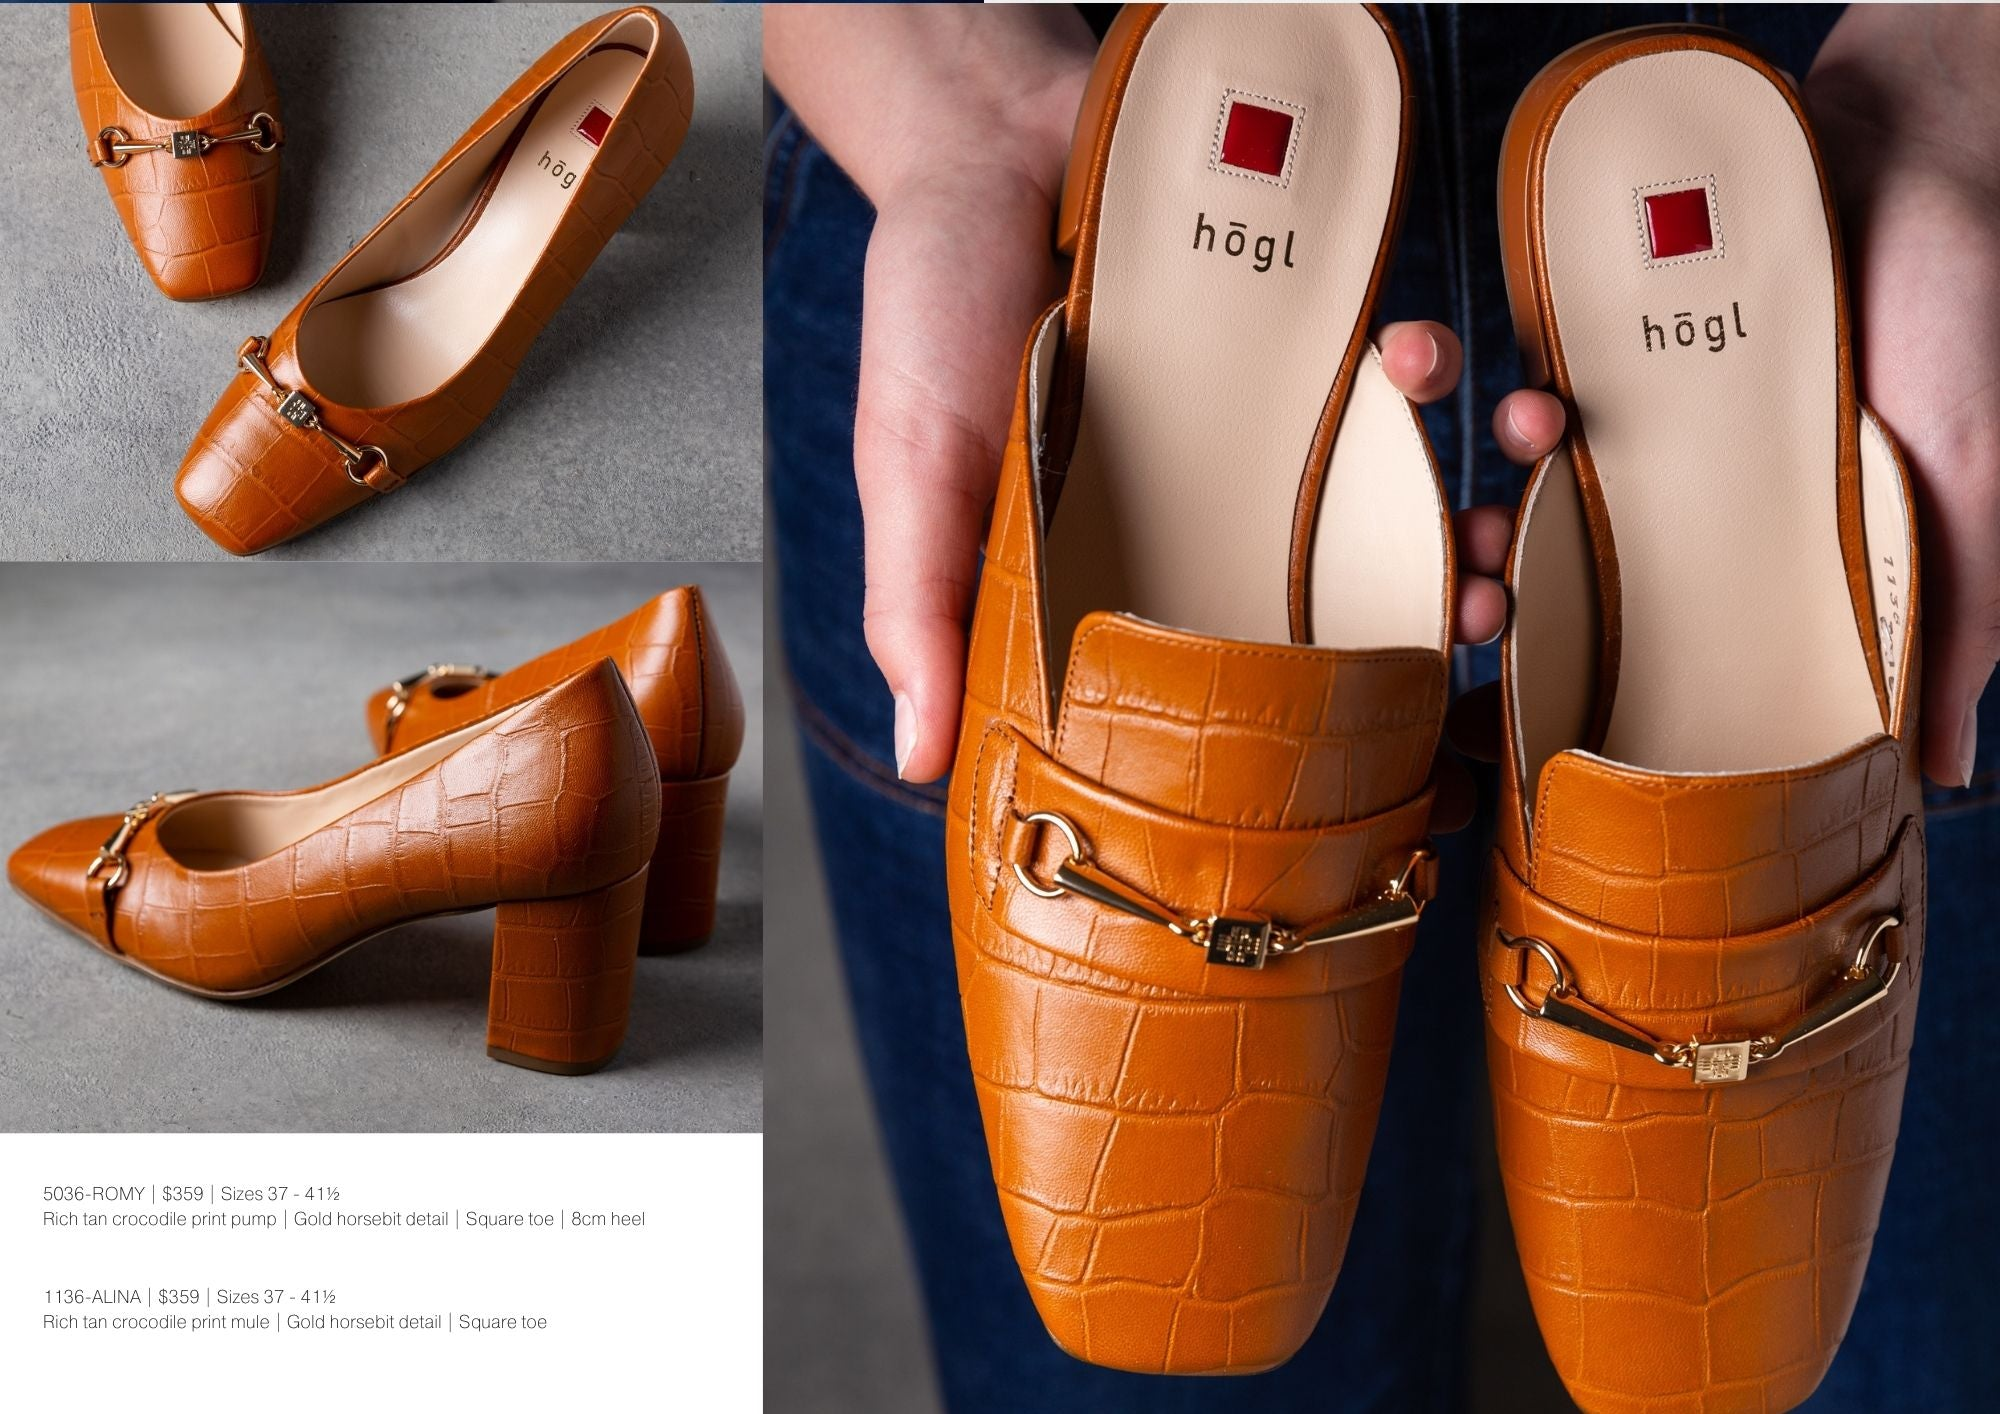 shop the hogl collection of women's shoes at Sissa Sorella online